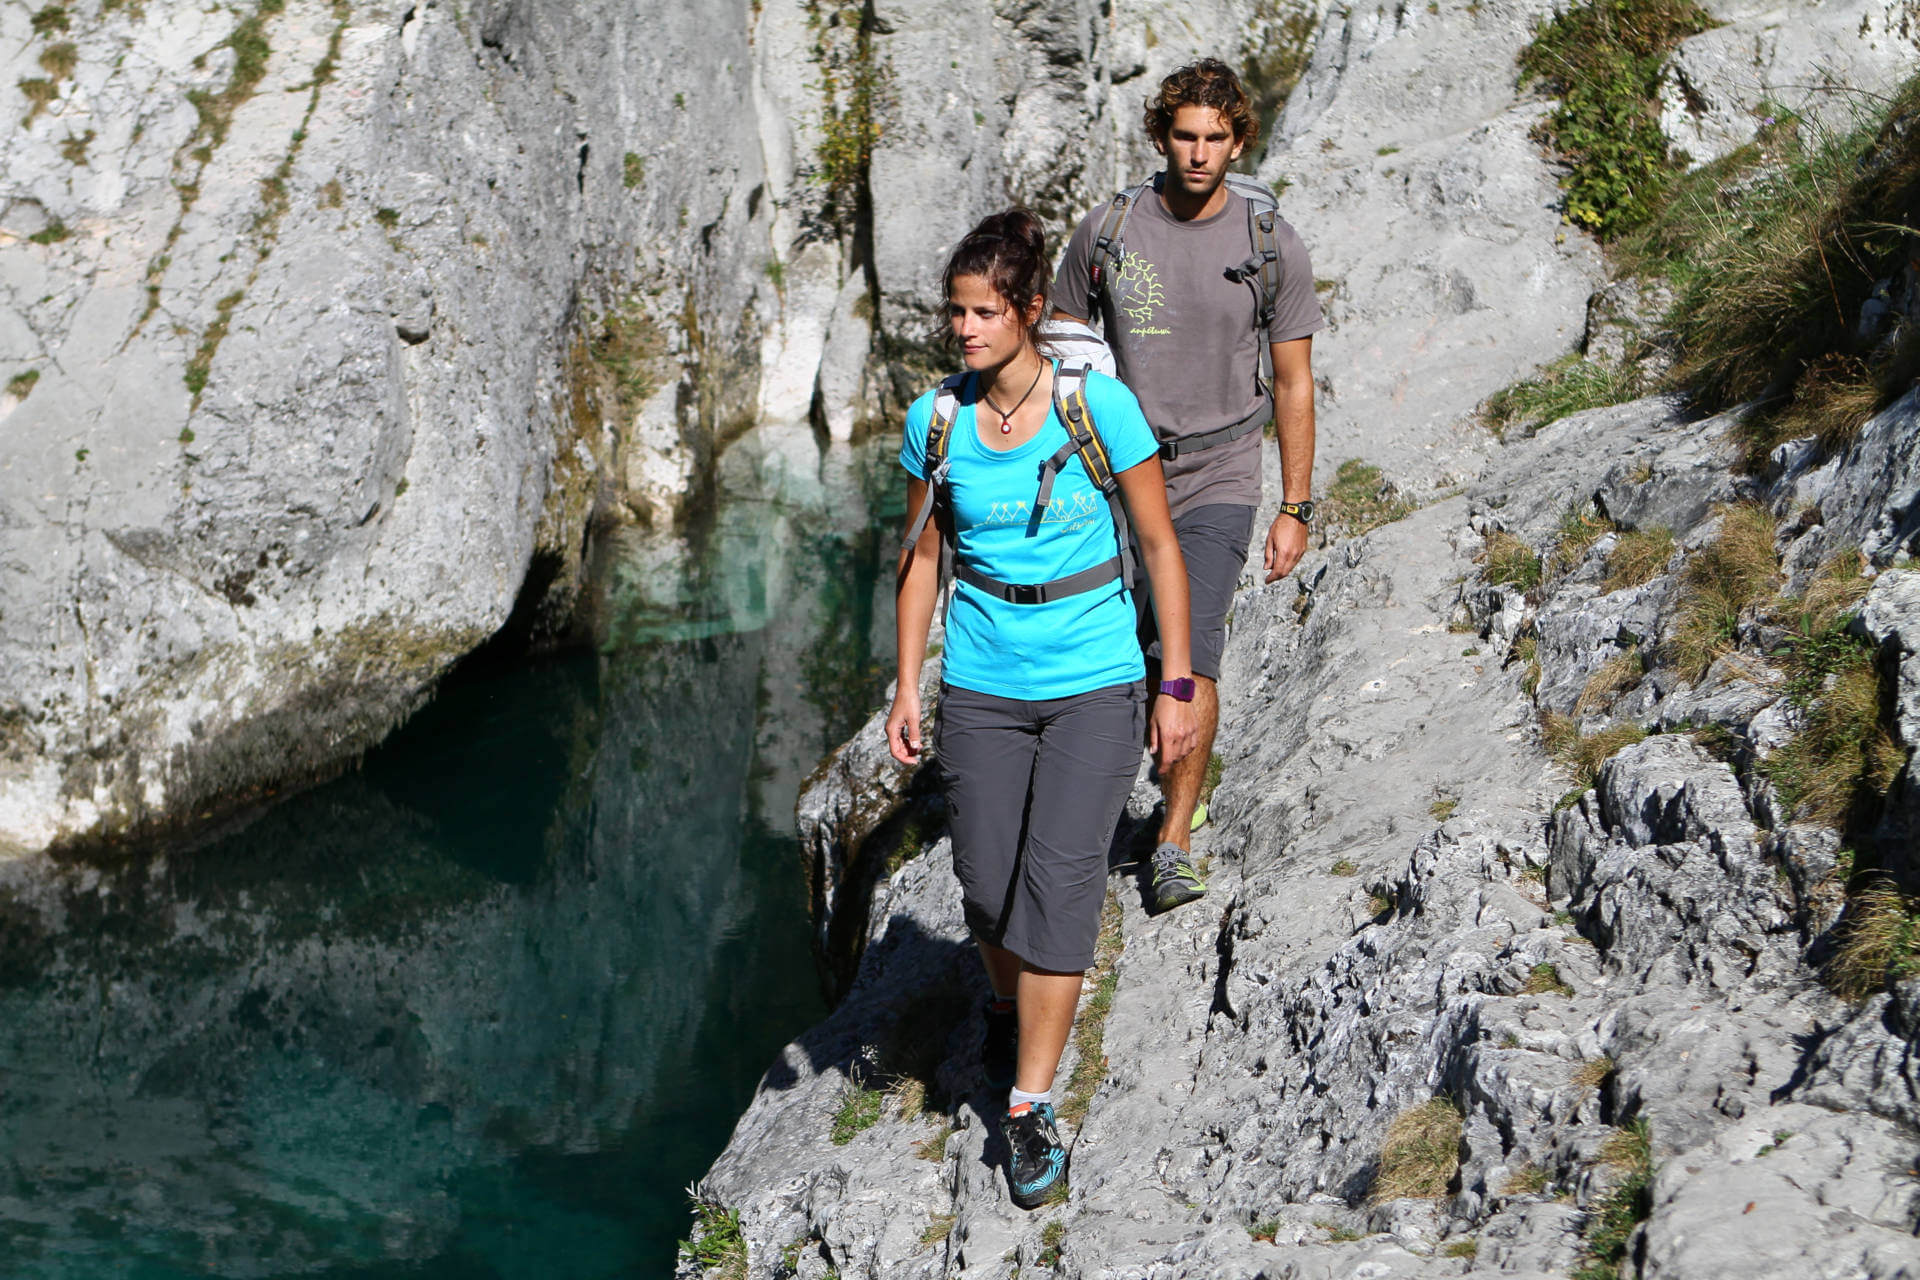 Interview Bergverlag Rohter - Two hikers in the mountains.